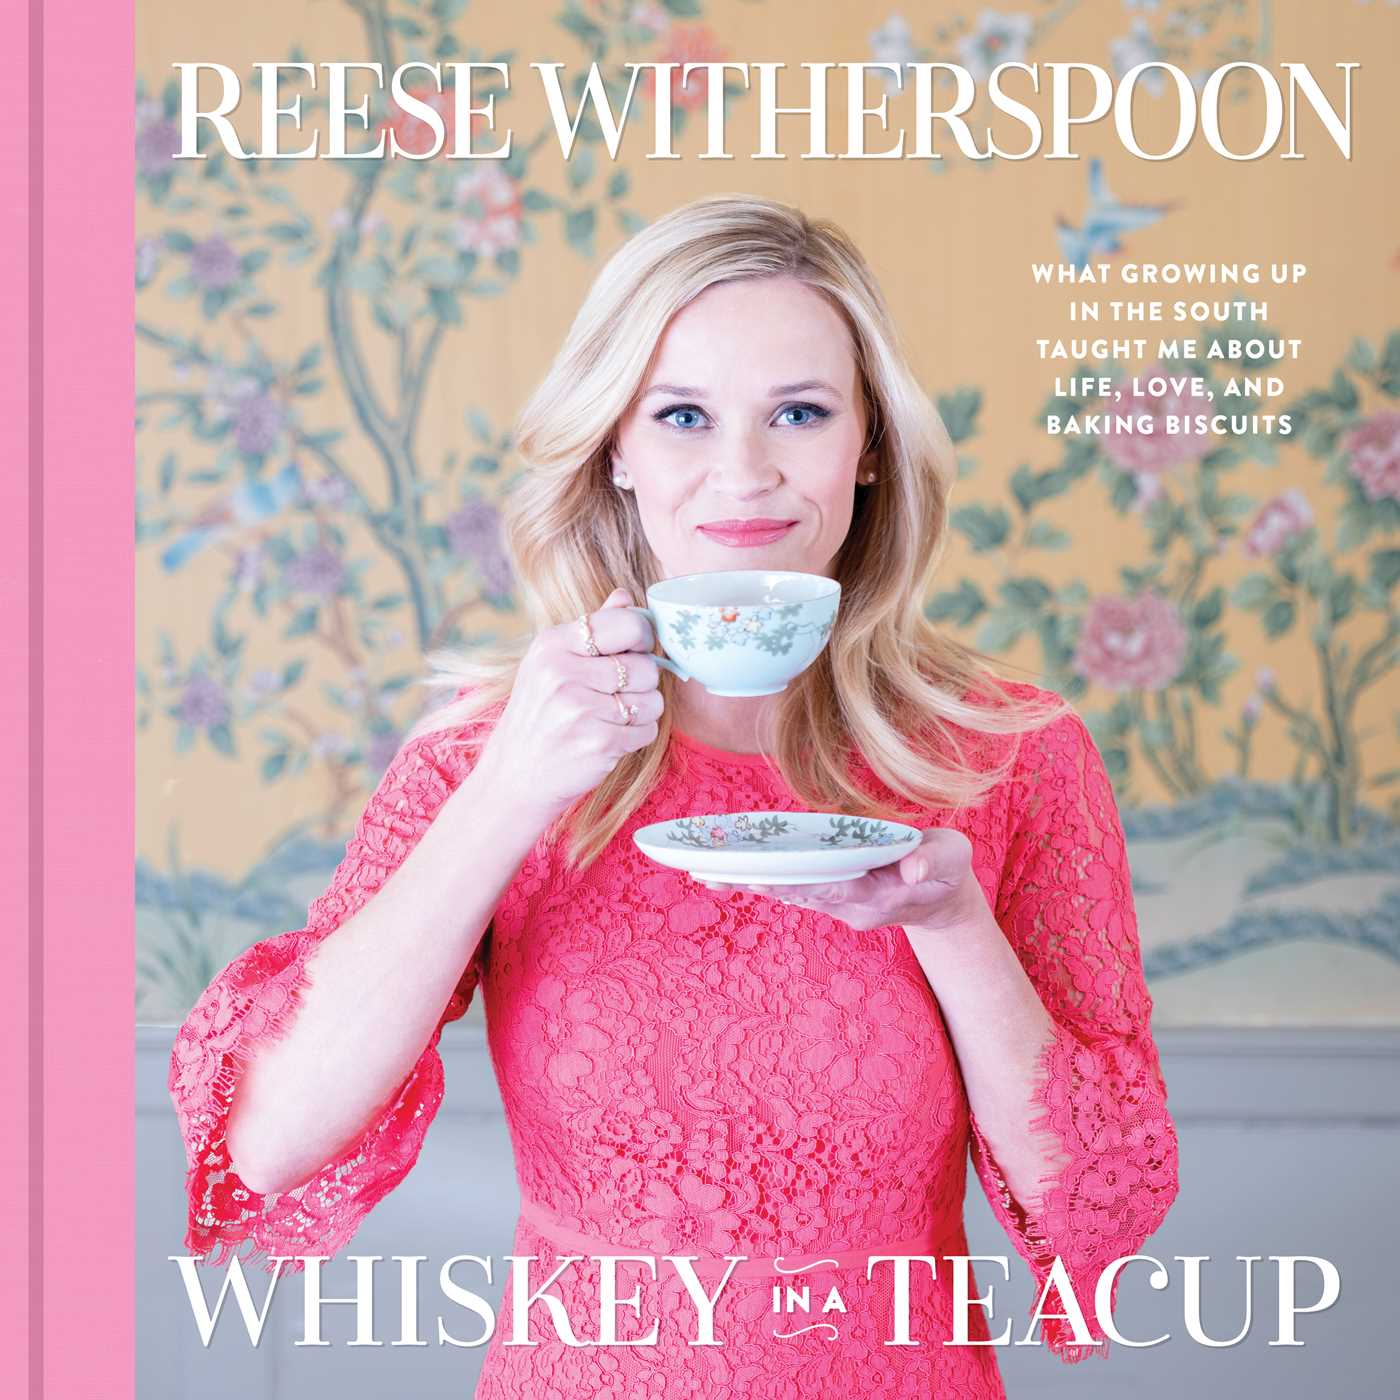 Whiskey in a teacup 9781471166228 hr